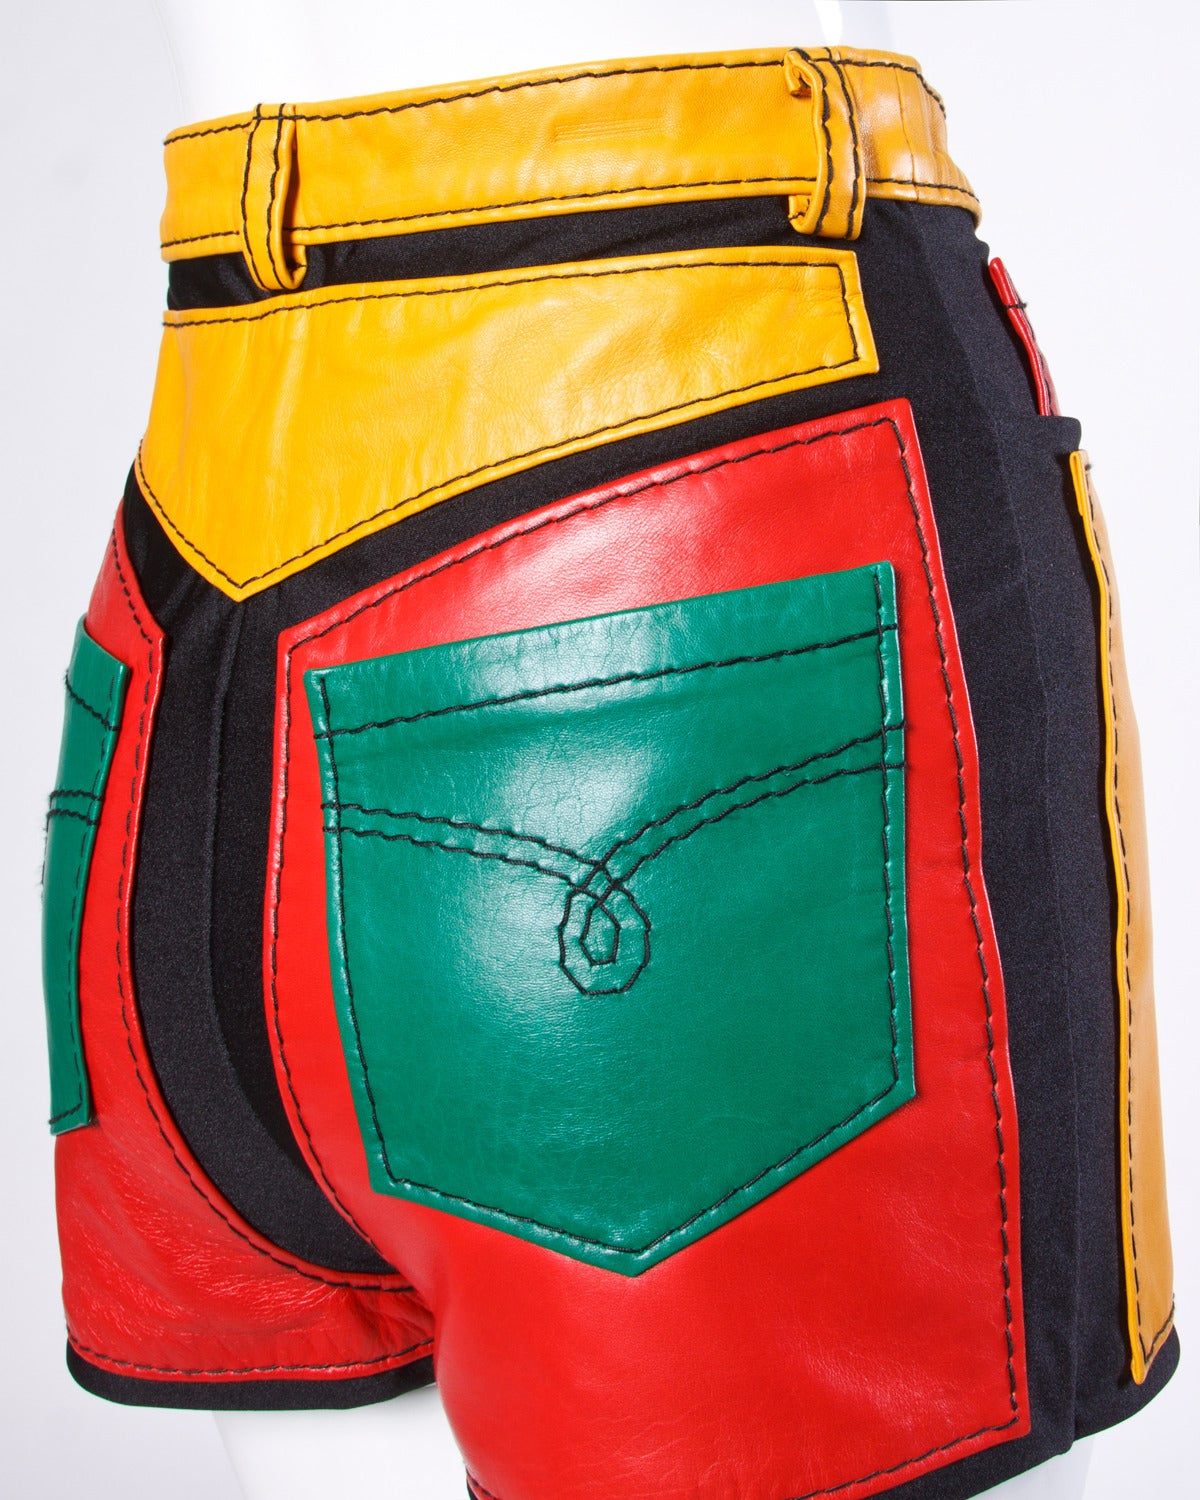 1993 Unworn Moschino Leather Color Block High Waist Hot Pants / Shorts 5